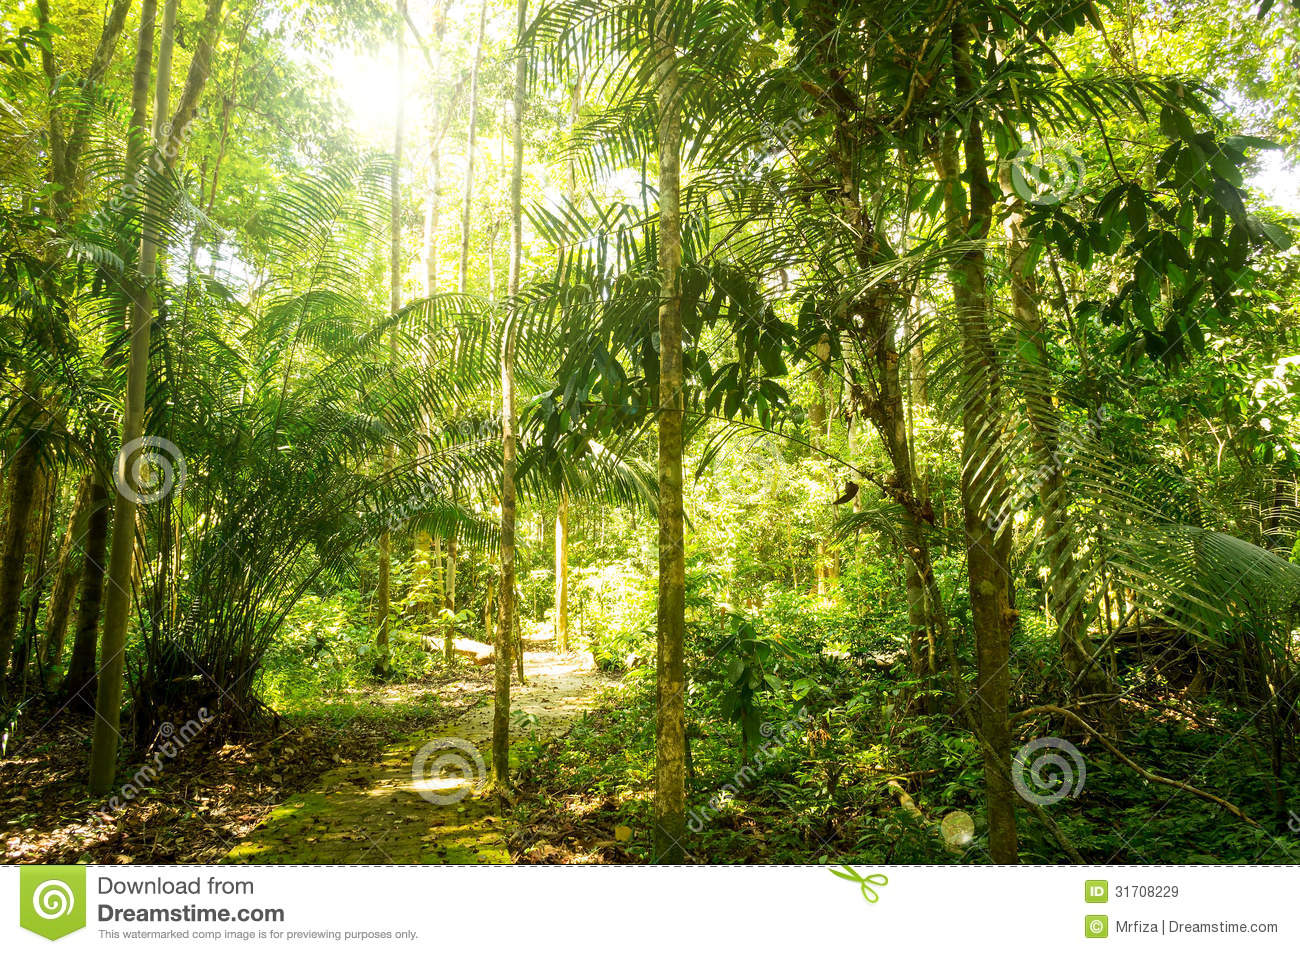 Tropical Rainforest Sunlight Tropical rainforest with sunnyTropical Rainforest Sunlight